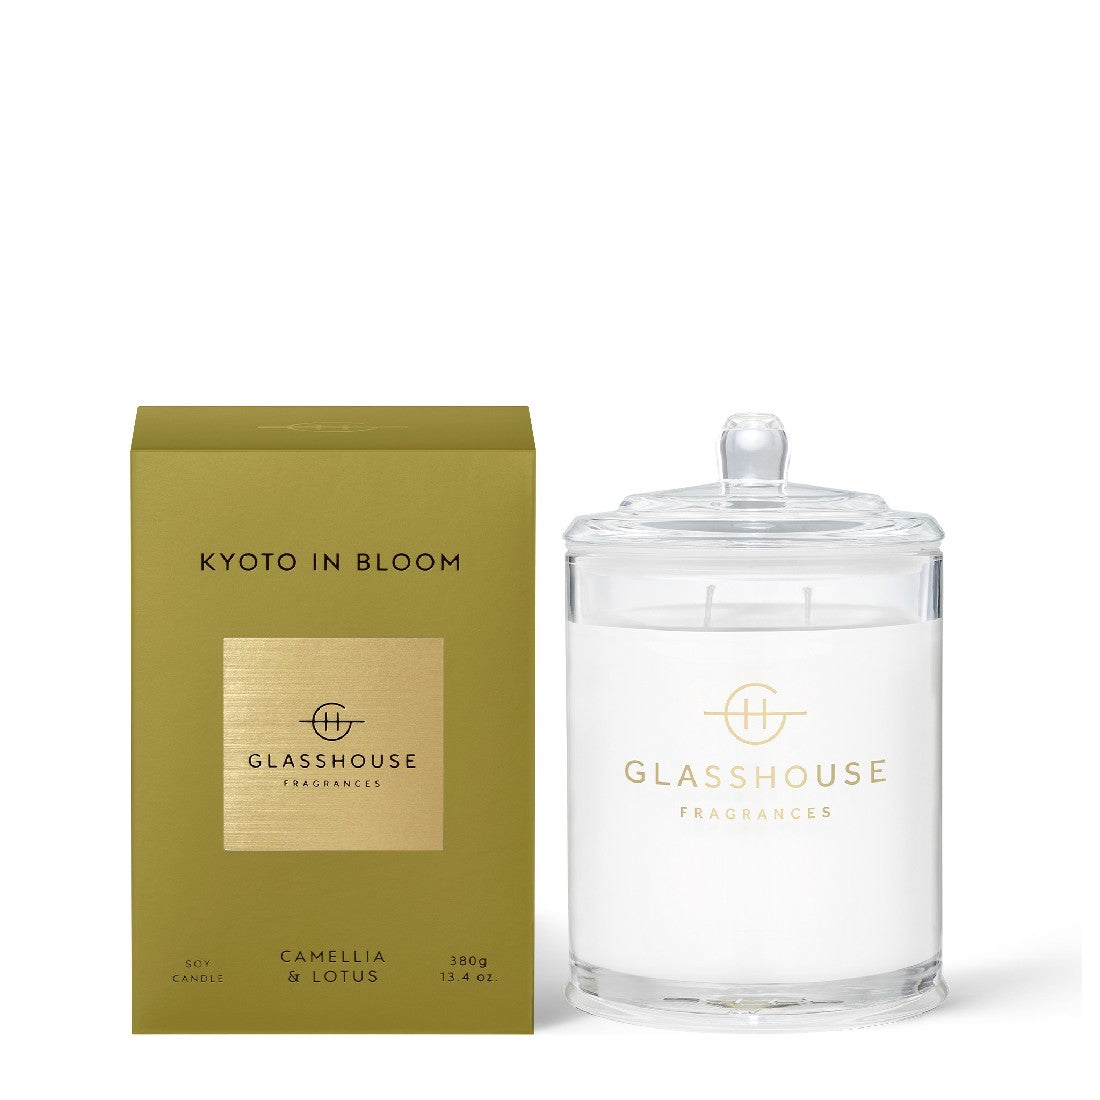 GLASSHOUSE CAMELLIA & LOTUS - KYOTO IN BLOOM 380G SOY CANDLE